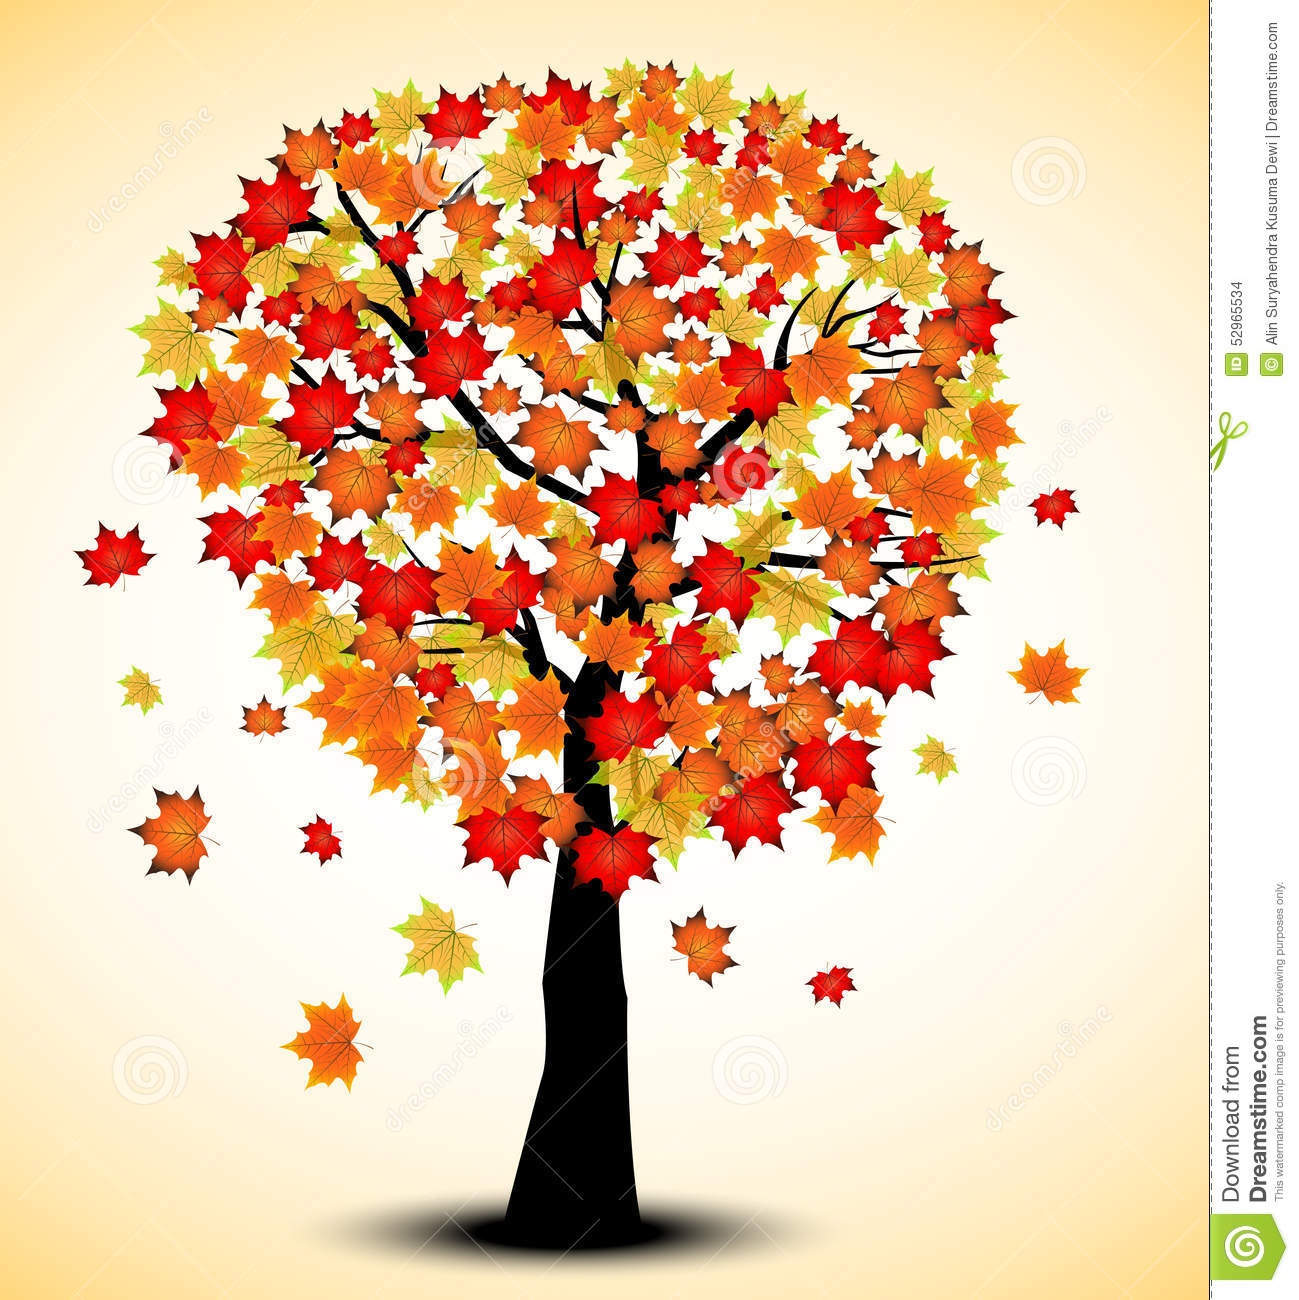 Decorative Autumn Tree Silhouette With Brown Leaves